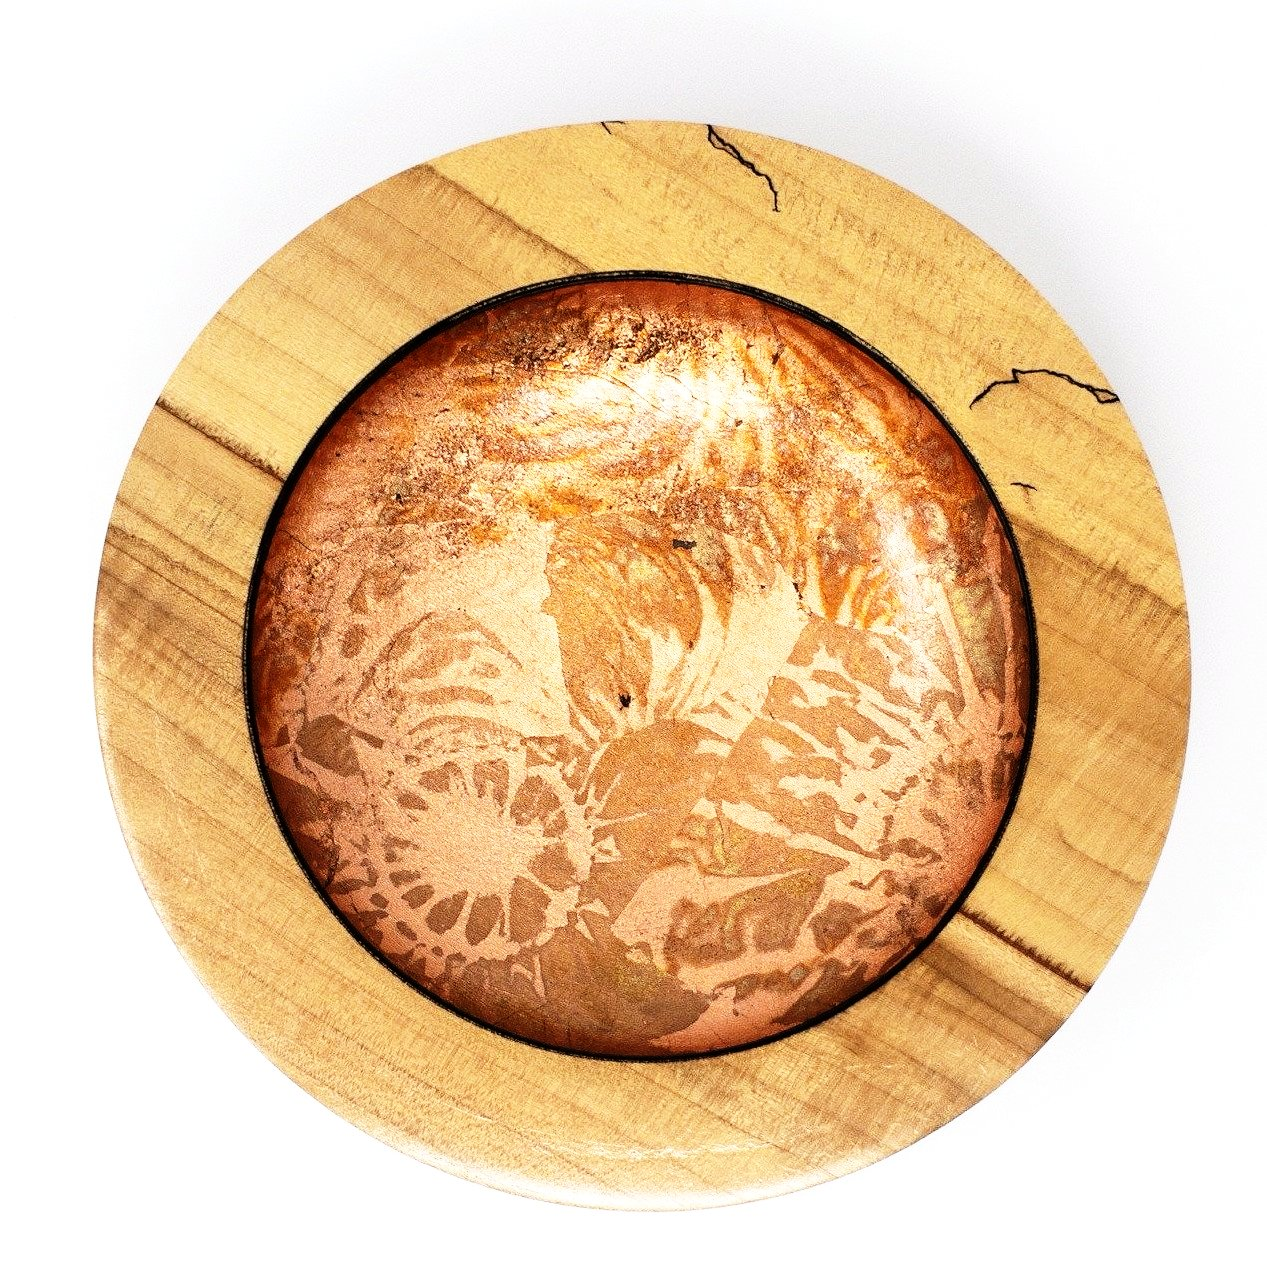 Stunning spalted Maple Art bowl with copper foil.